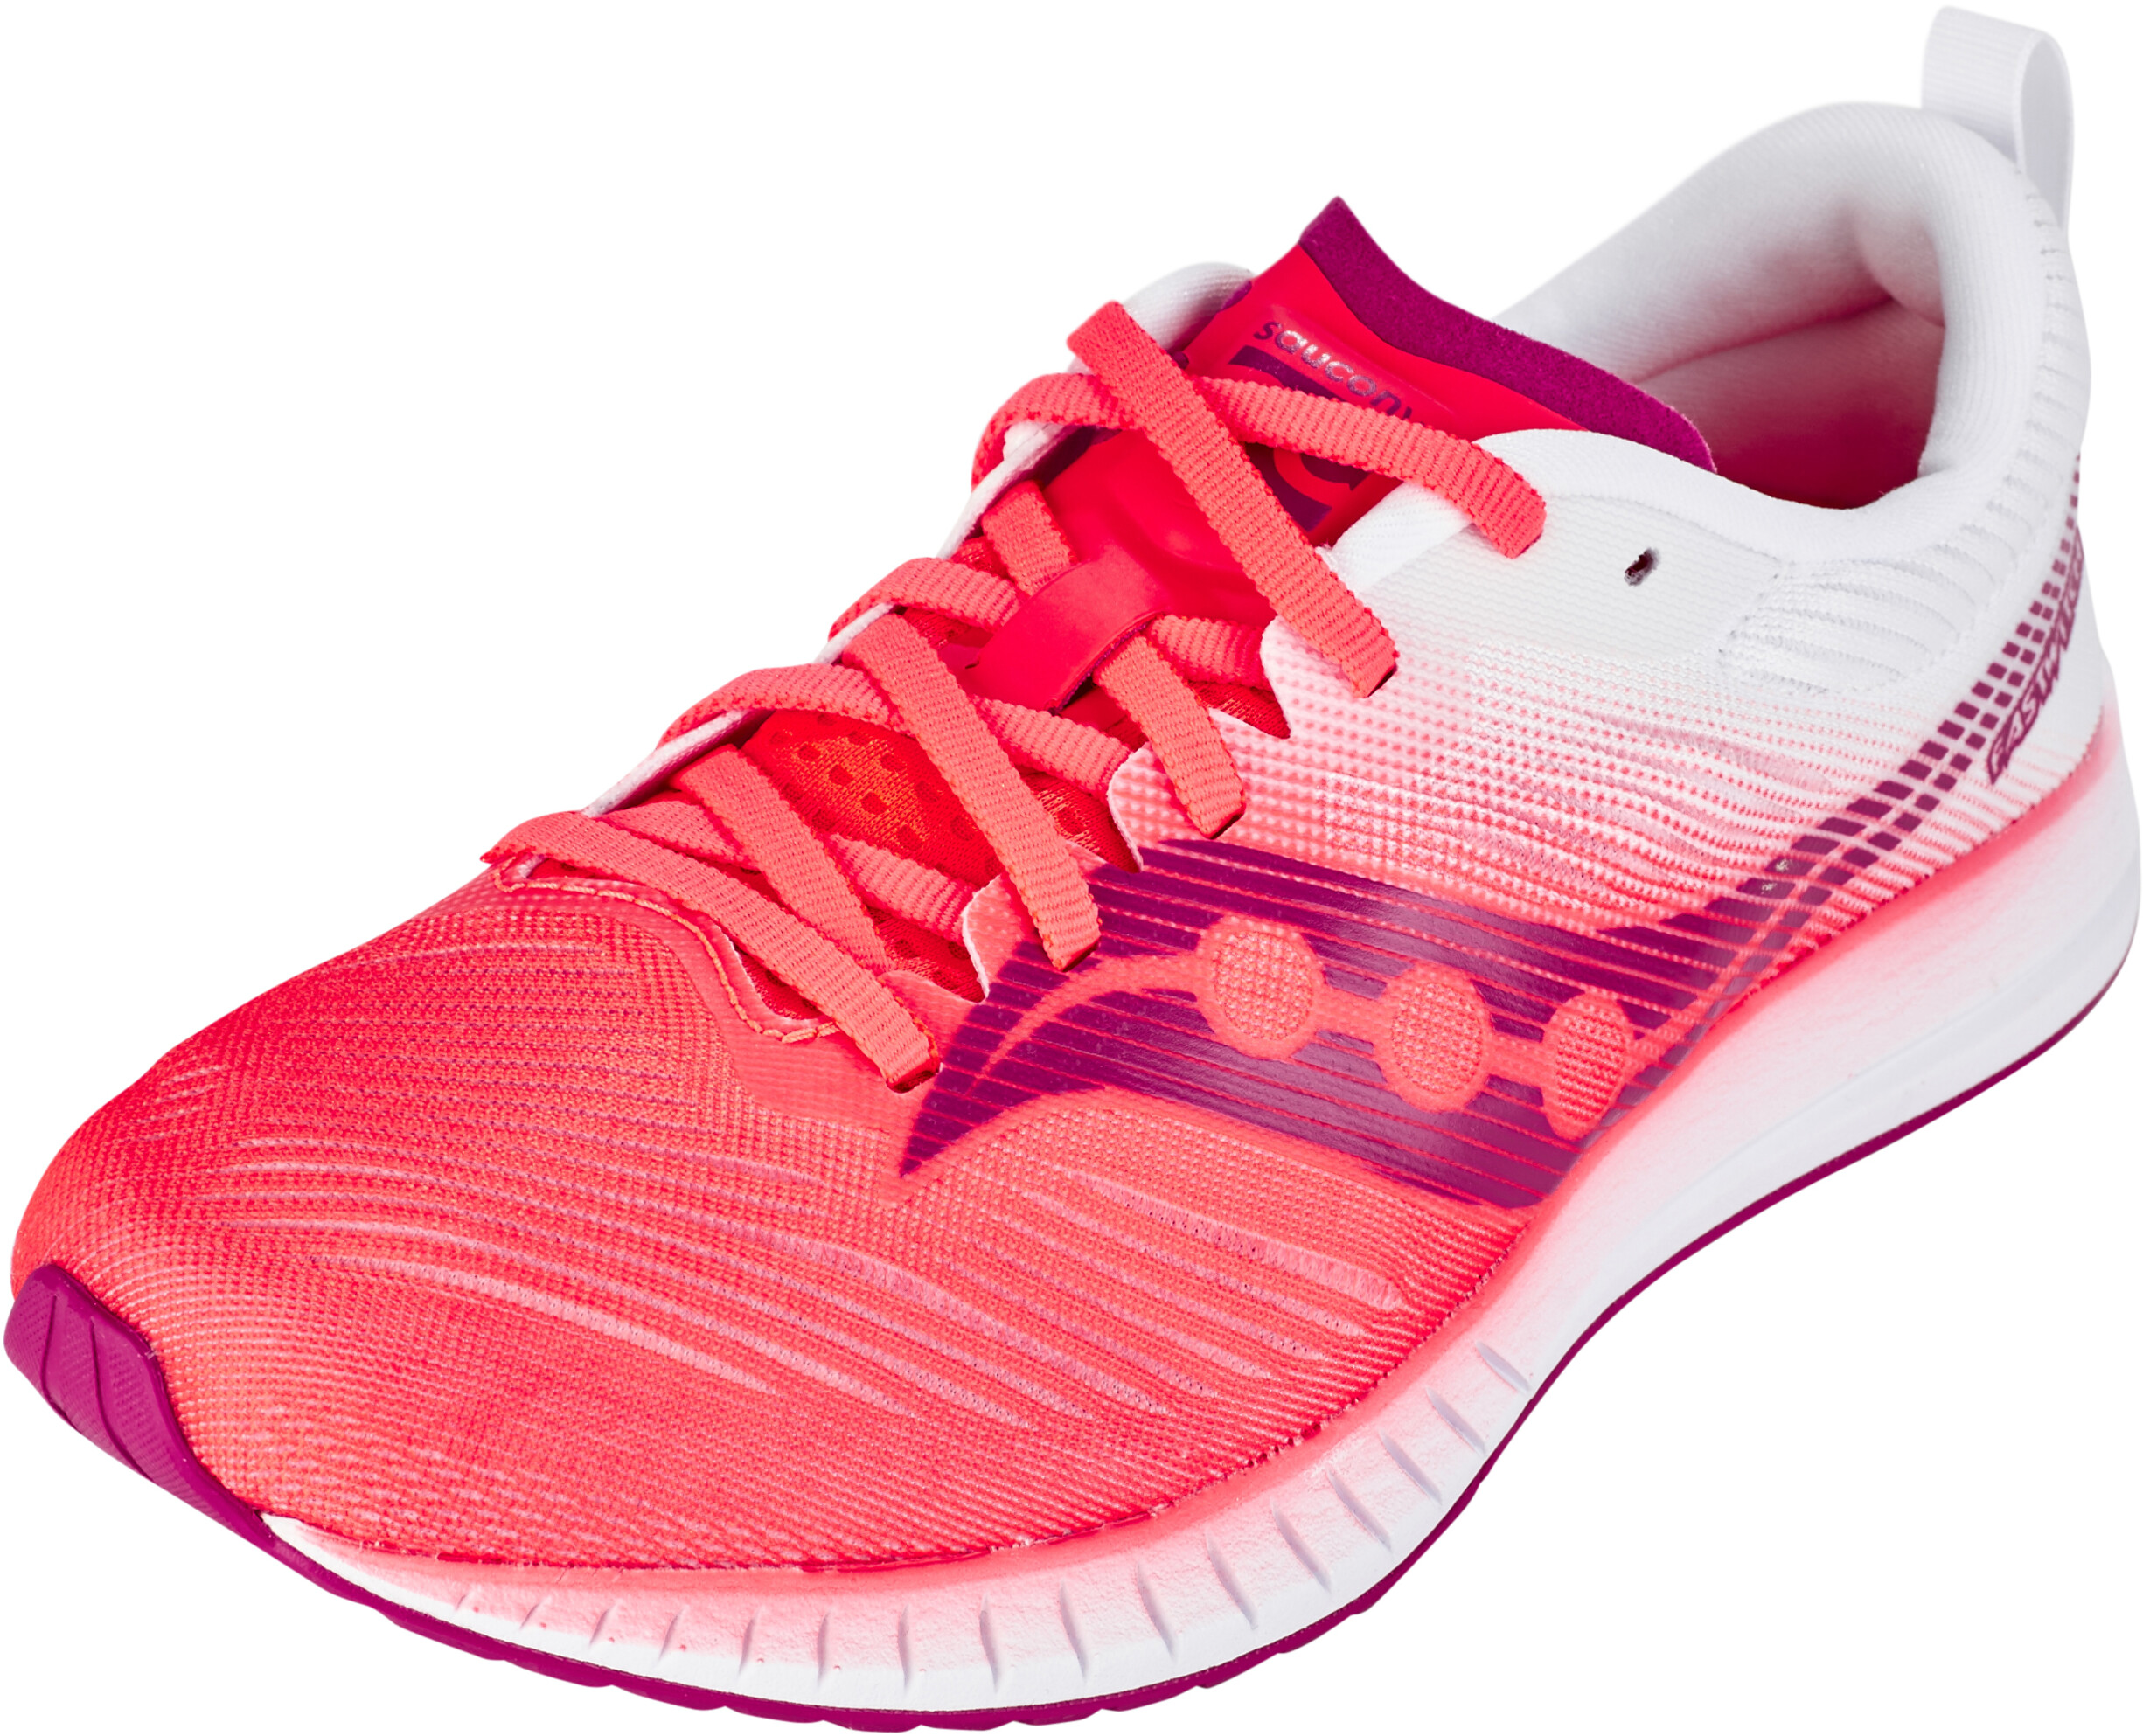 6536fe4c saucony Fastwitch 9 Shoes Women vizired white at Bikester.co.uk